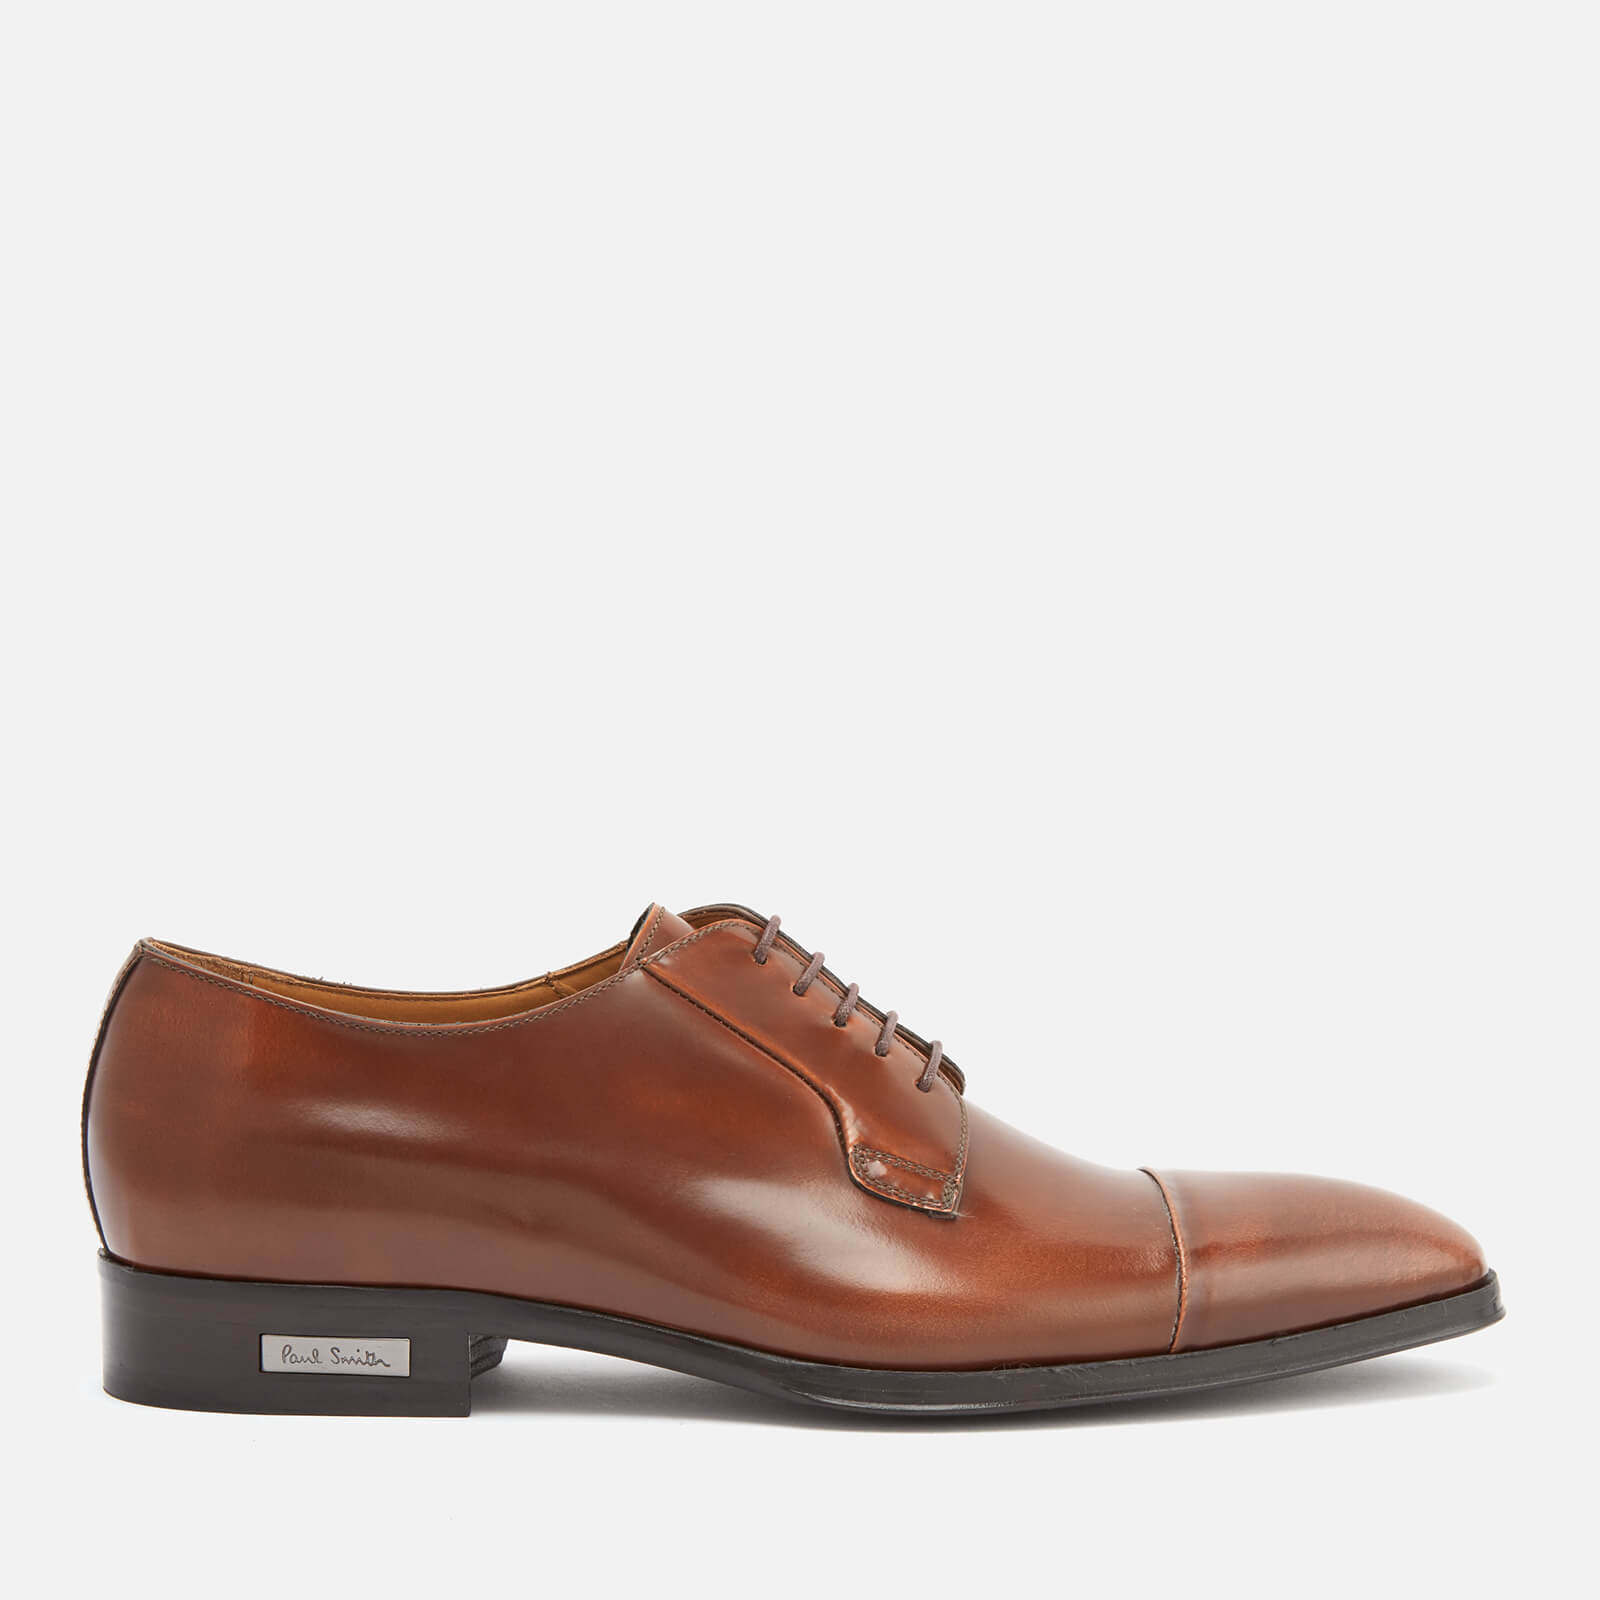 01cd071c9ca Paul Smith Men's Spencer High Shine Leather Toe Cap Derby Shoes - Tan -  Free UK Delivery over £50